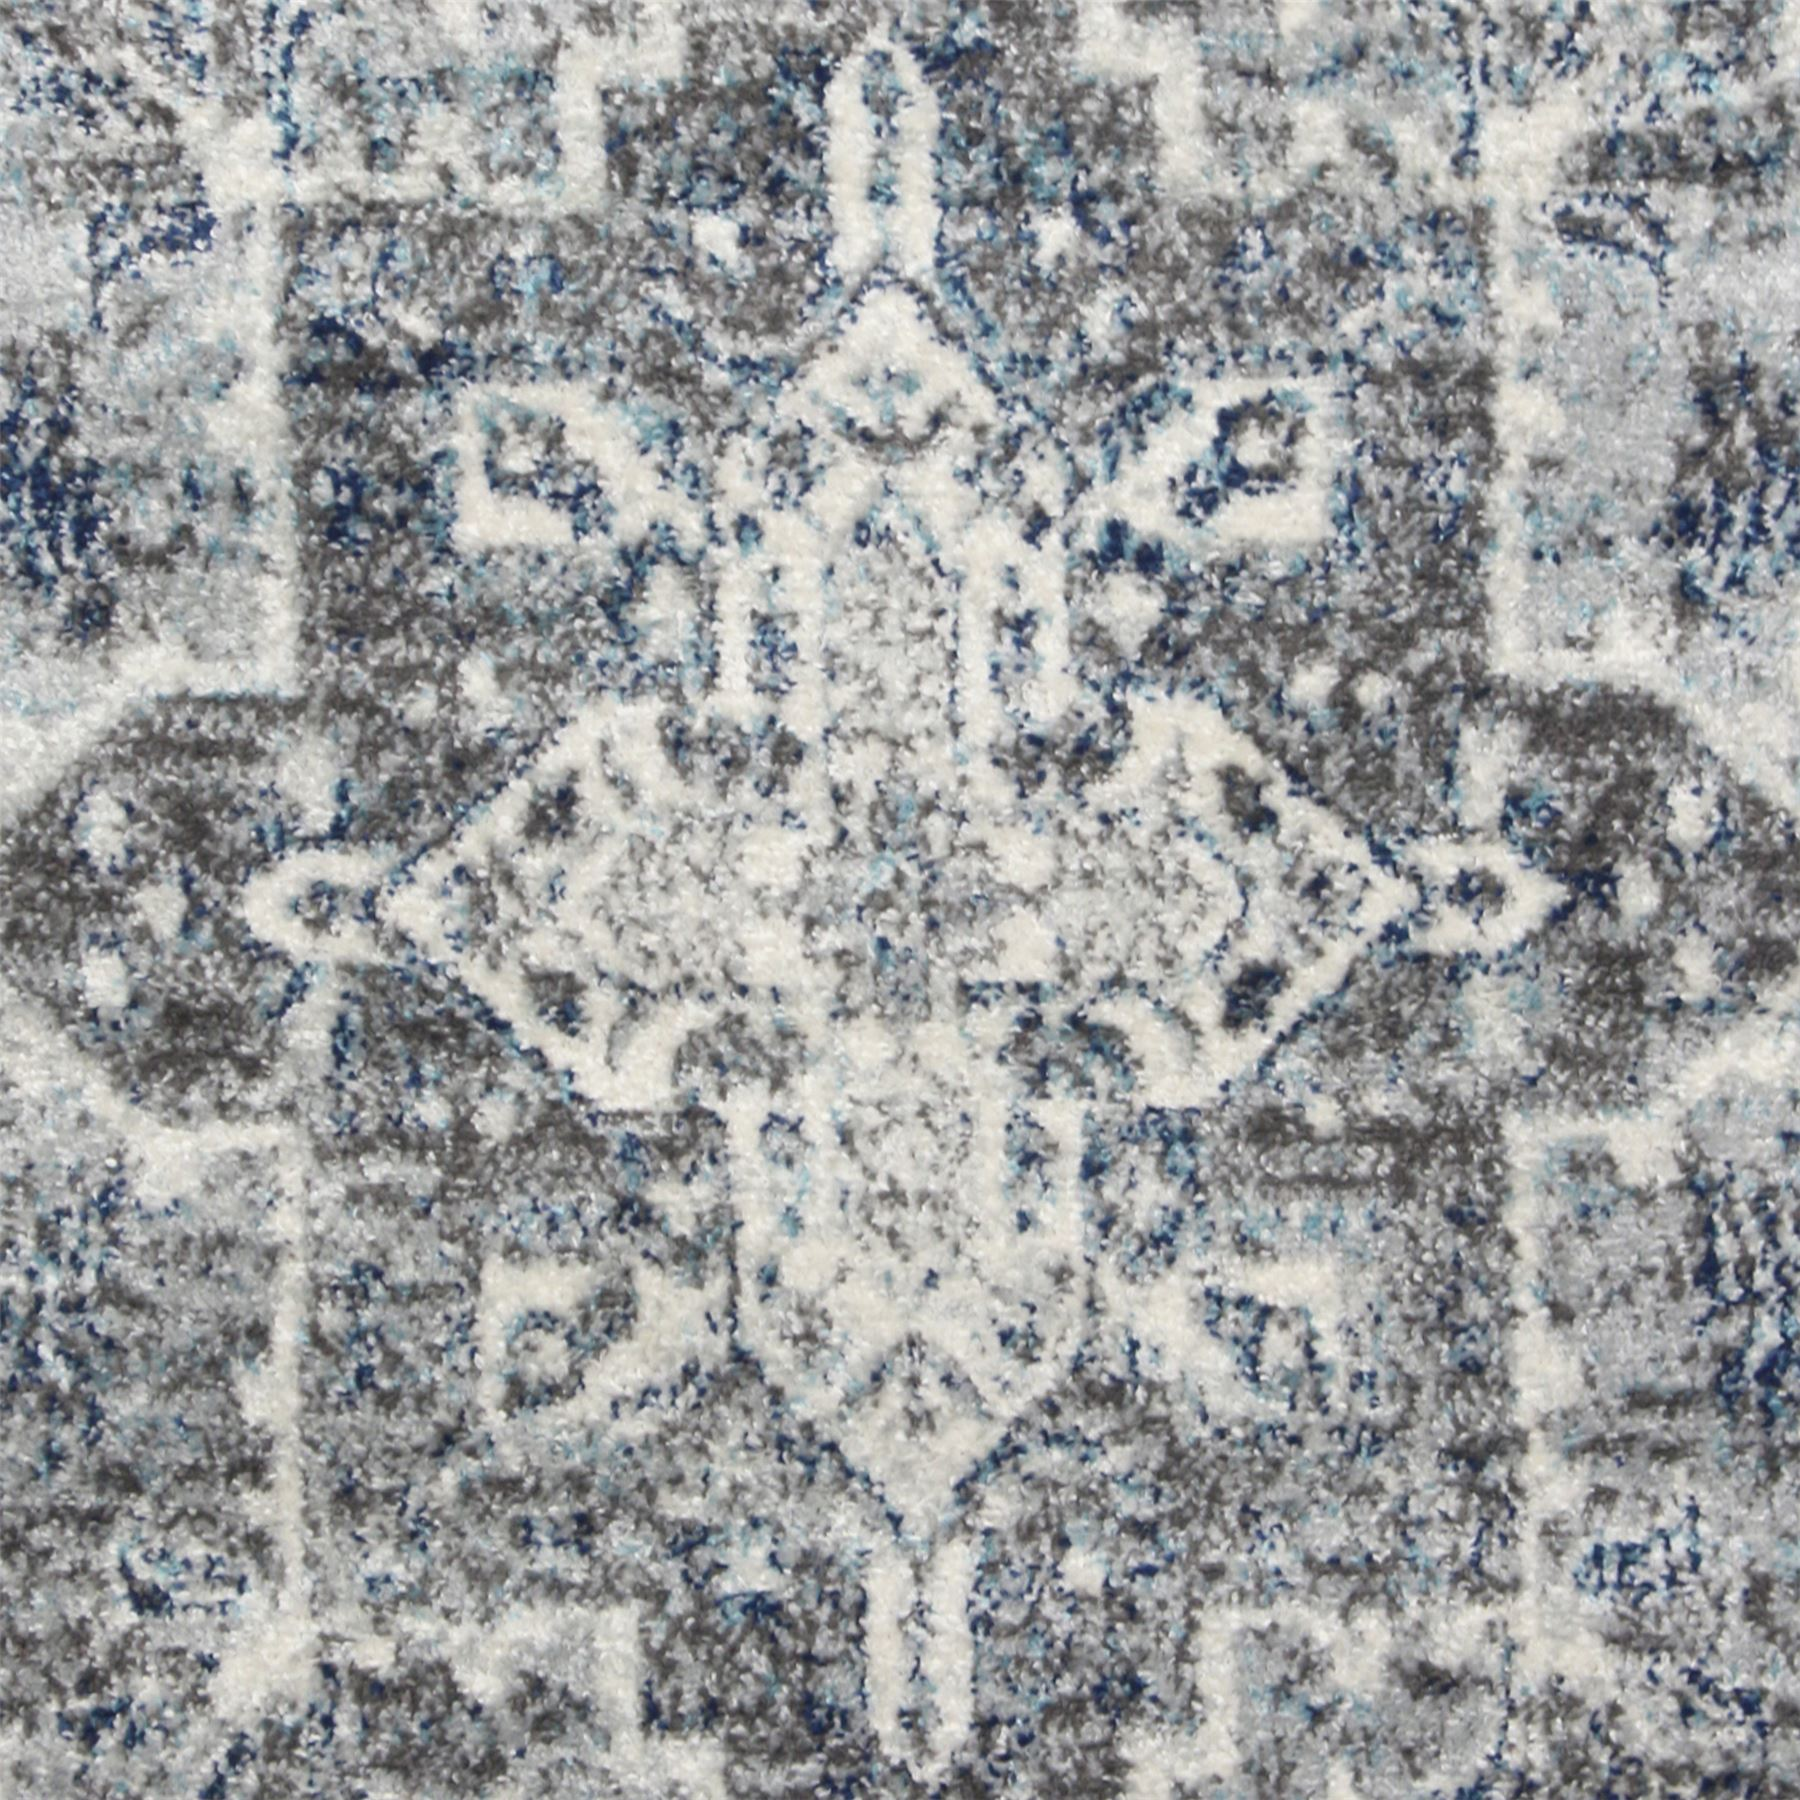 Large-Quality-Traditional-Area-Rug-Assorted-Persian-Floral-Designs-Carpet-Runner thumbnail 75